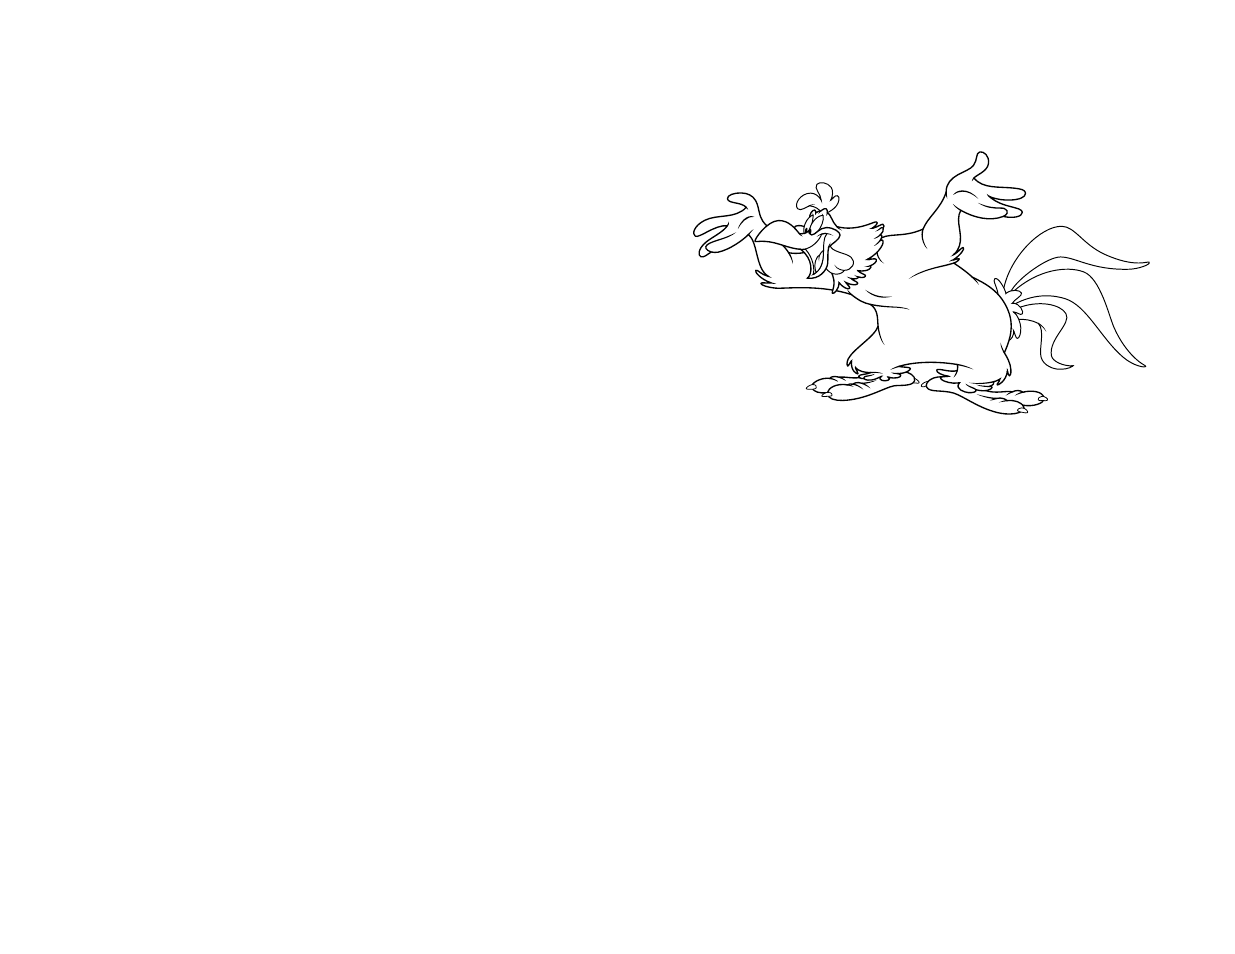 Important safeguards, save these instructions, warning | salton.